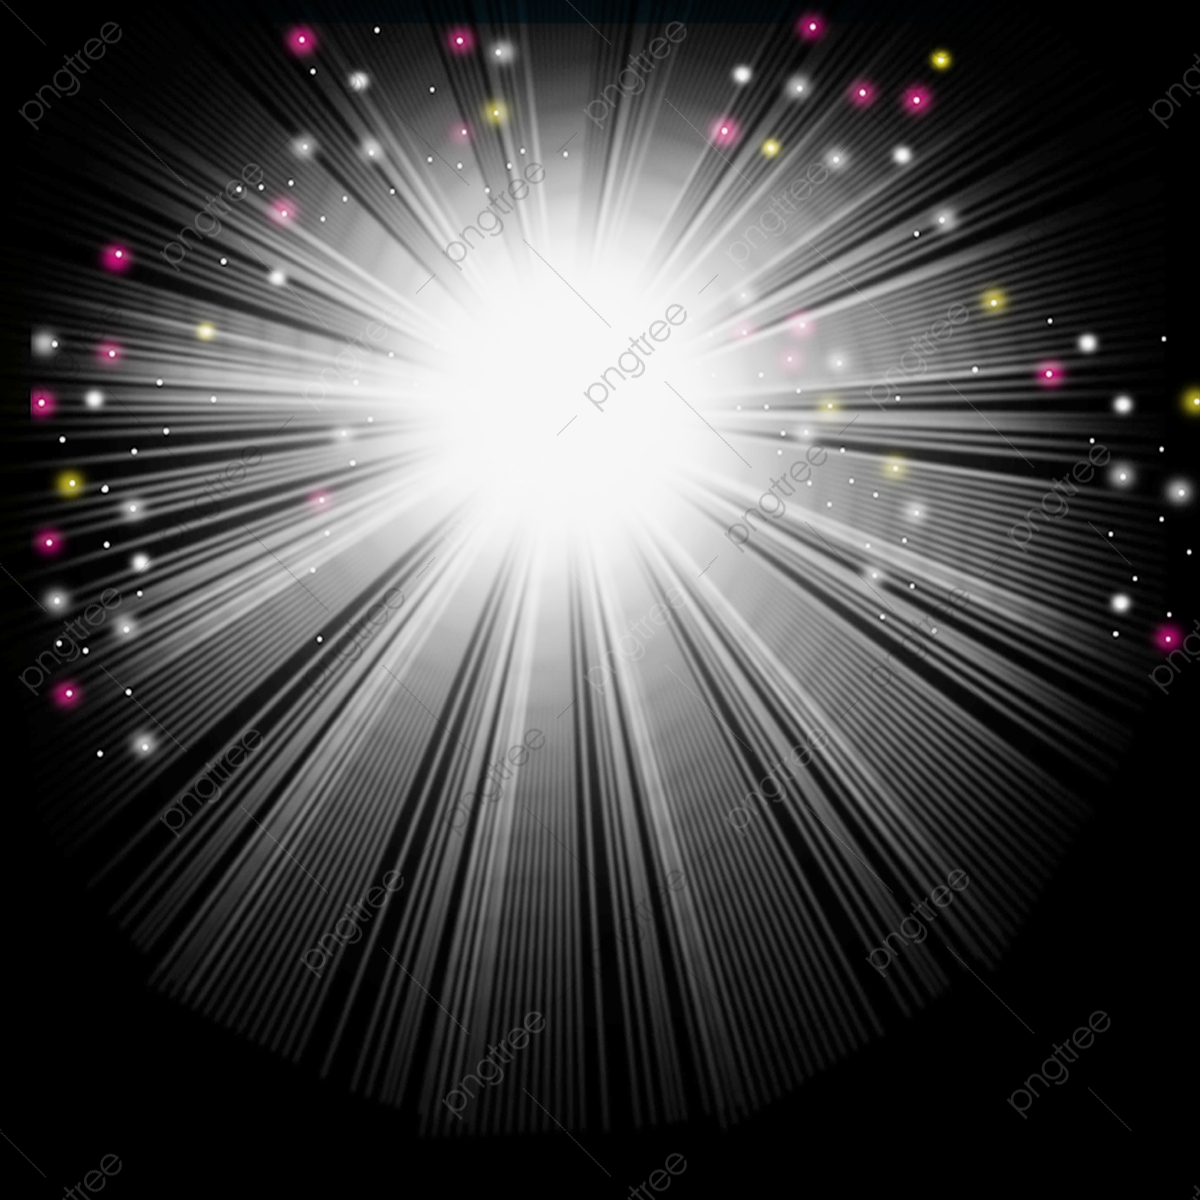 Sparkled ray twinkling png. Free pink and white rays clipart